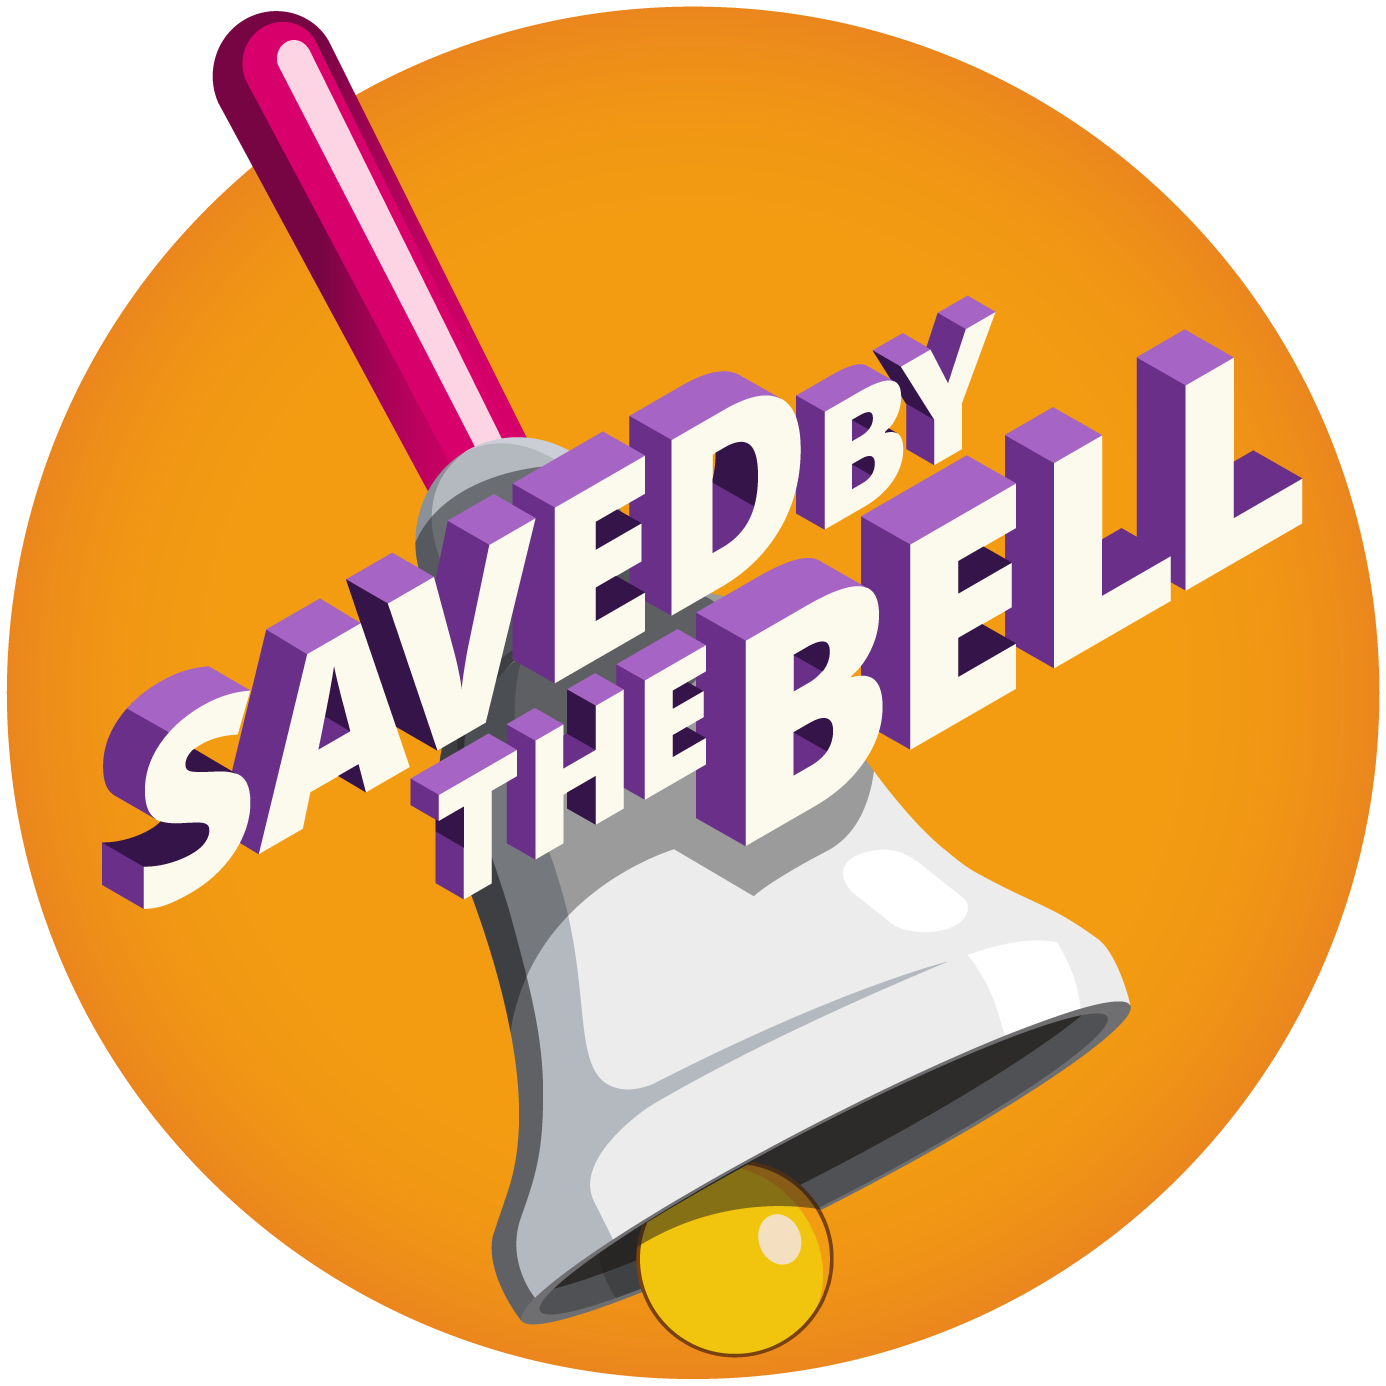 Beeldmerk of logo: een bel met de tekst Saved by the bell